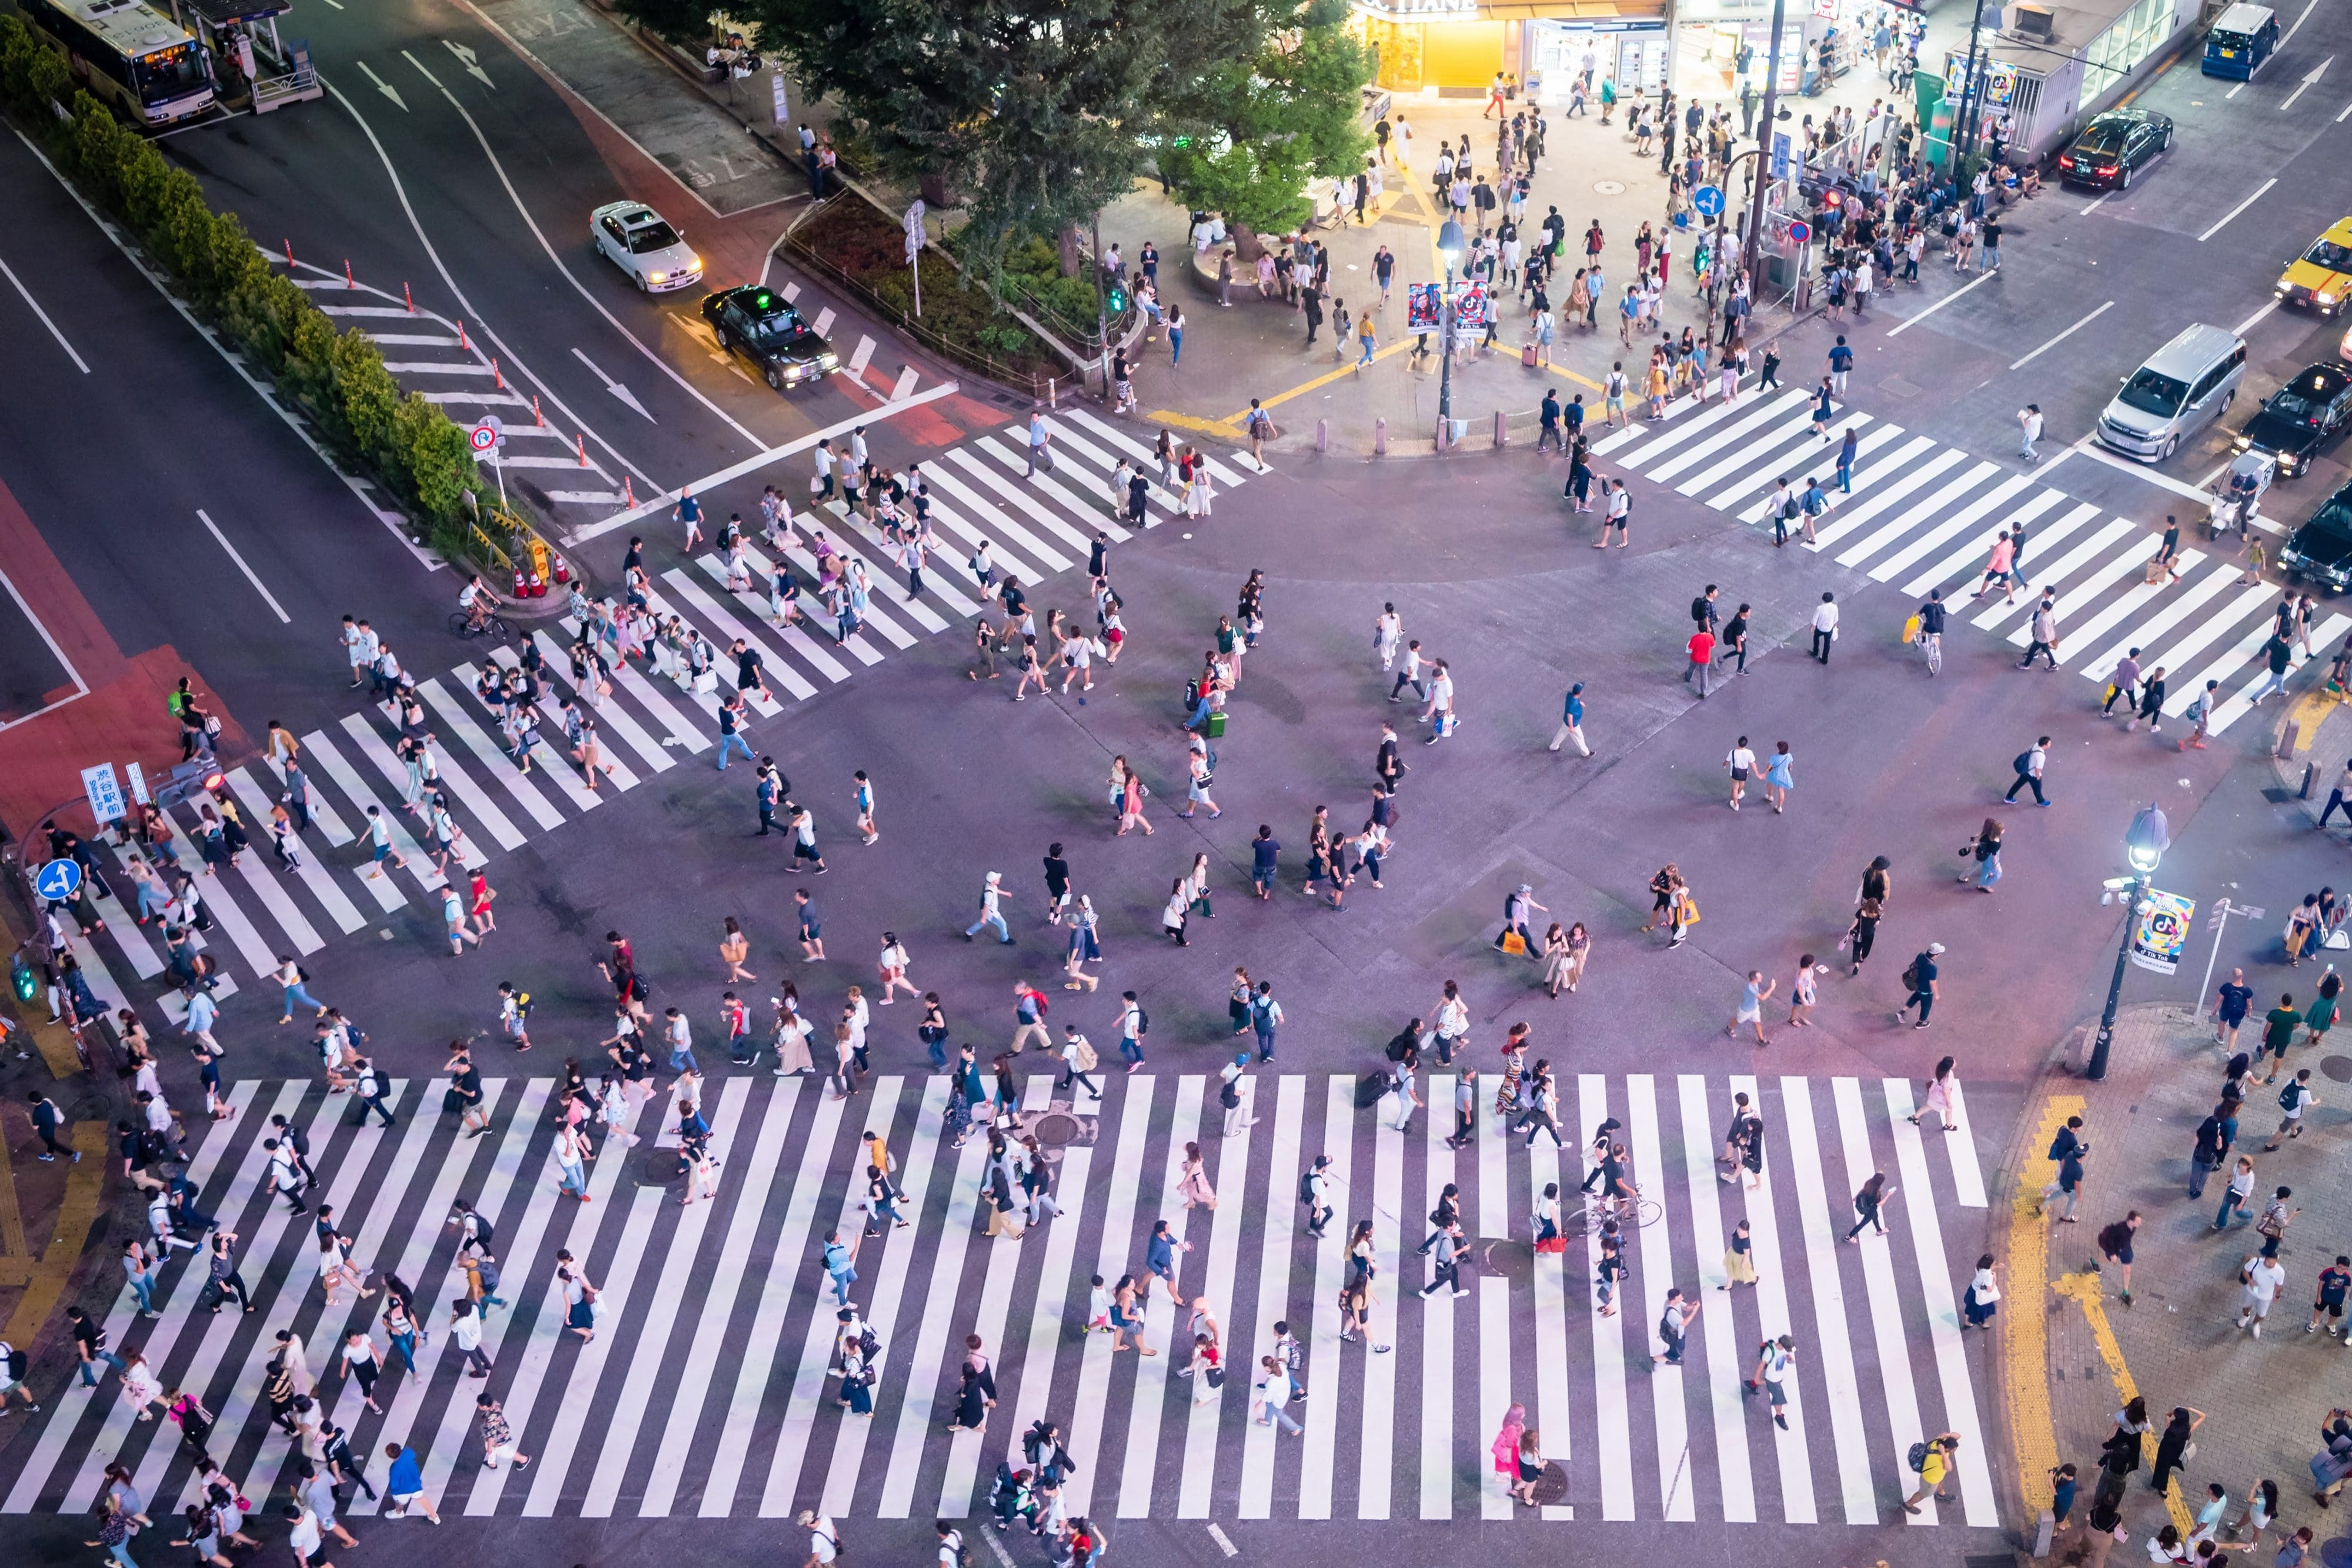 Overhead view of the Shibuya Crossing in Tokyo